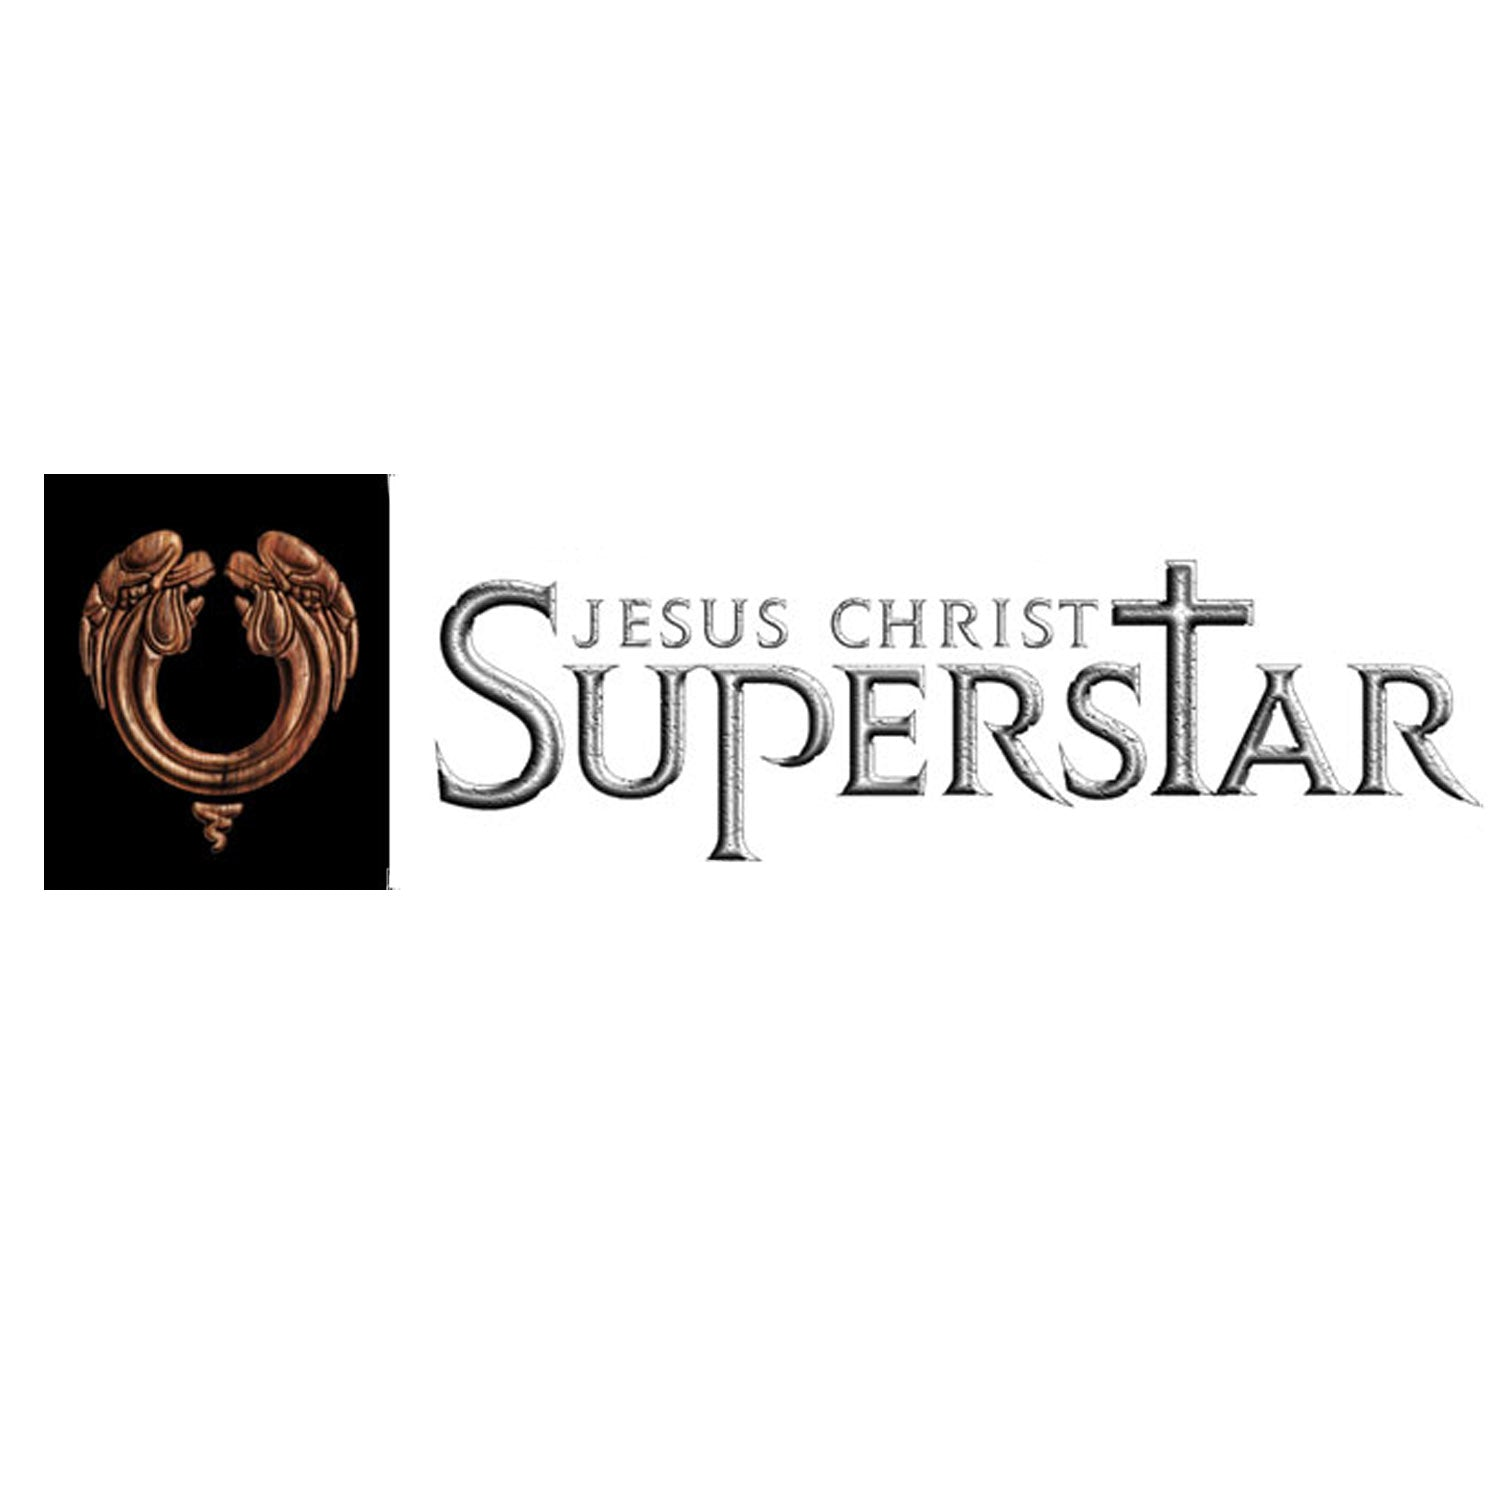 Jesus Christ Superstar performed by Malvern Theater Society